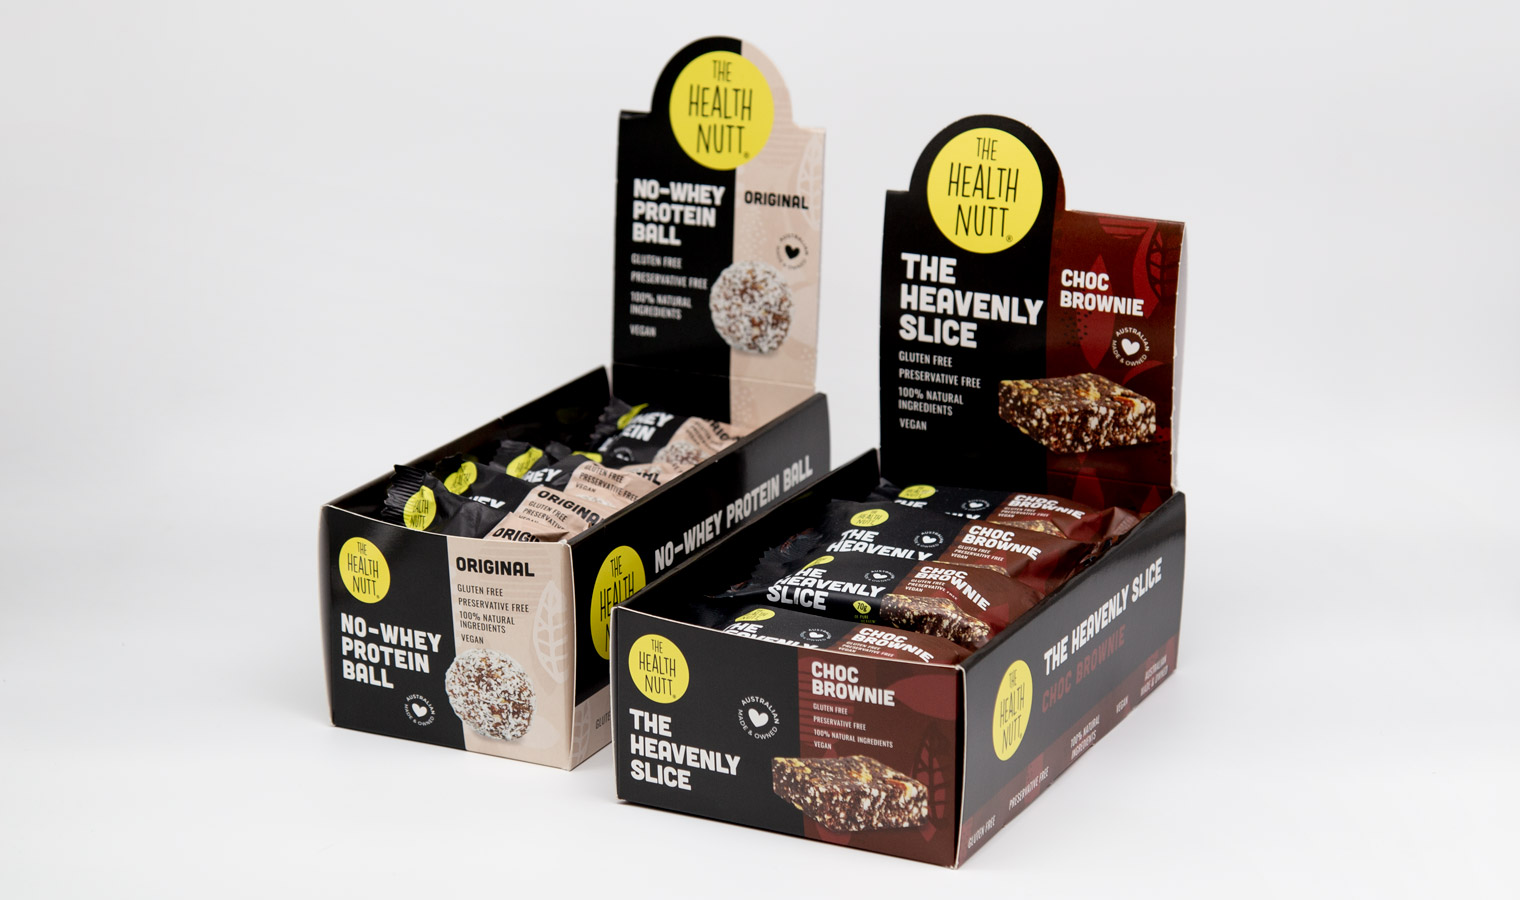 Flow wrap protein ball packaging in self-shipper boxes